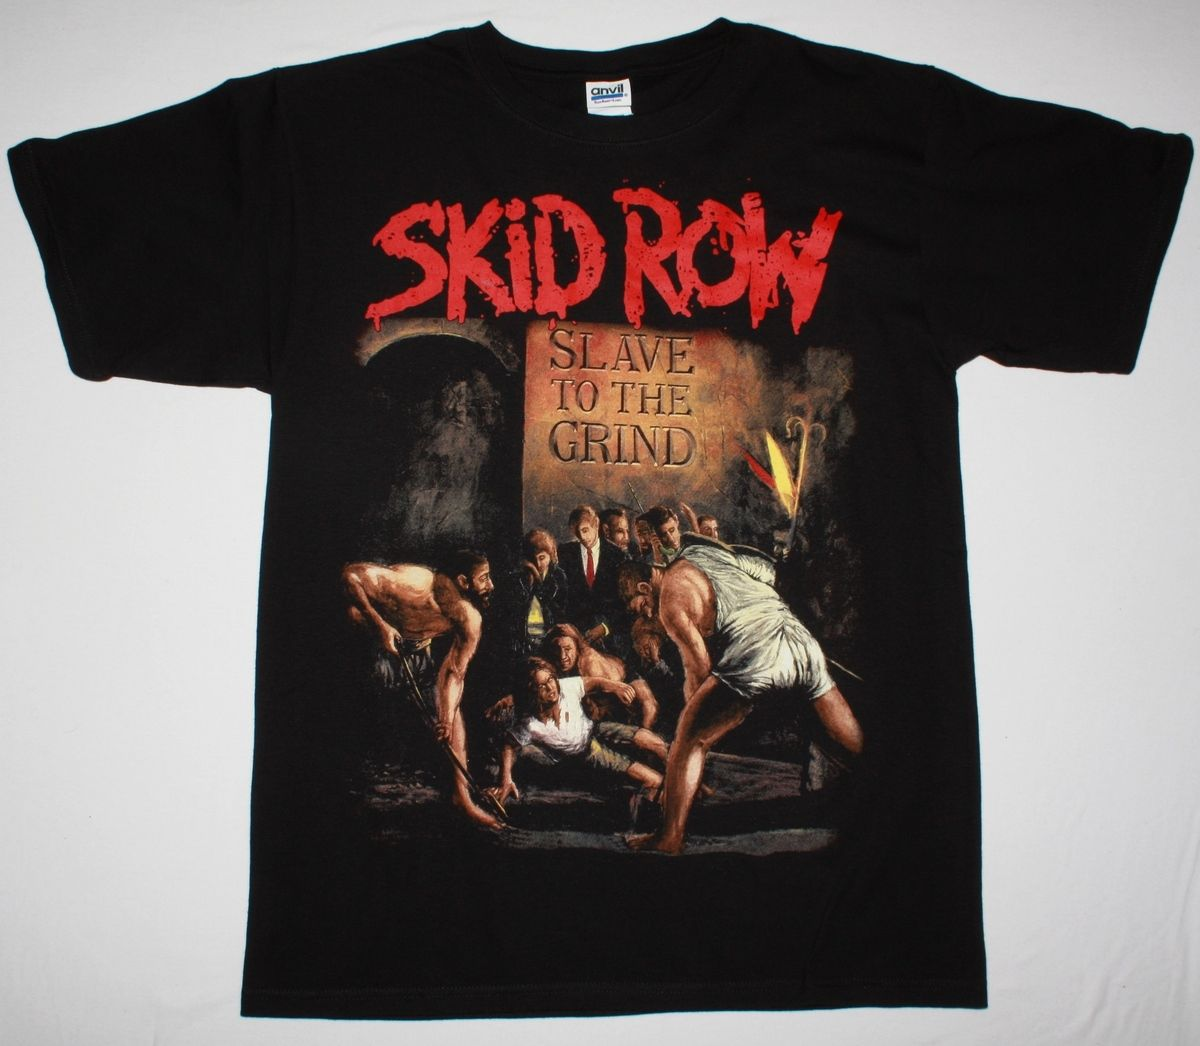 Skid Row Slave To The Grind'91 Glam Rock Skidrow Dokken <font><b>Ratt</b></font> New Black <font><b>T</b></font> <font><b>Shirt</b></font> Great Discount Cotton <font><b>Men</b></font> Tee image